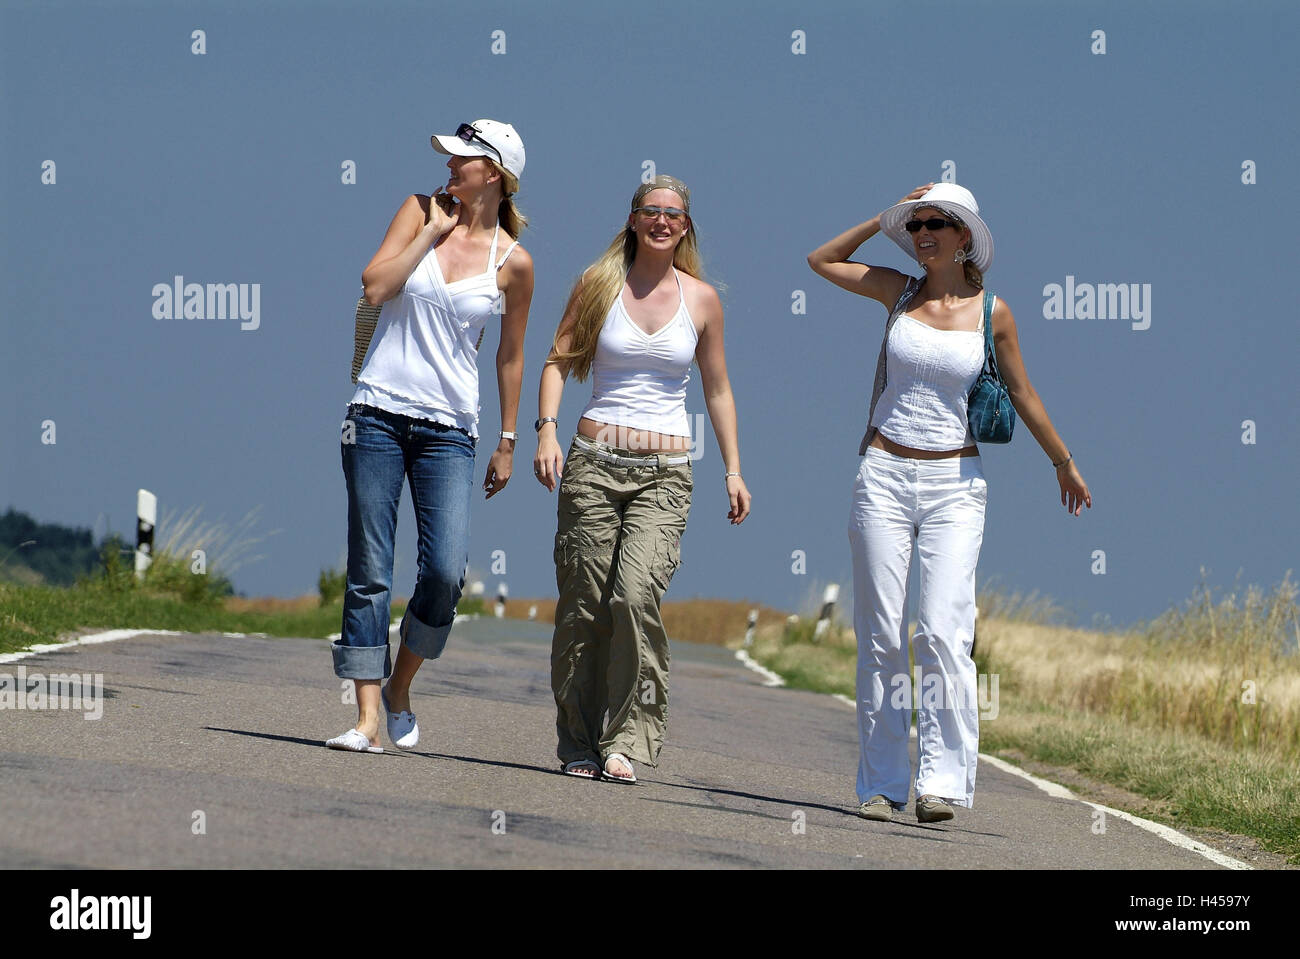 Women, three, young, country road, goes, cheerfully, summers, - Stock Image